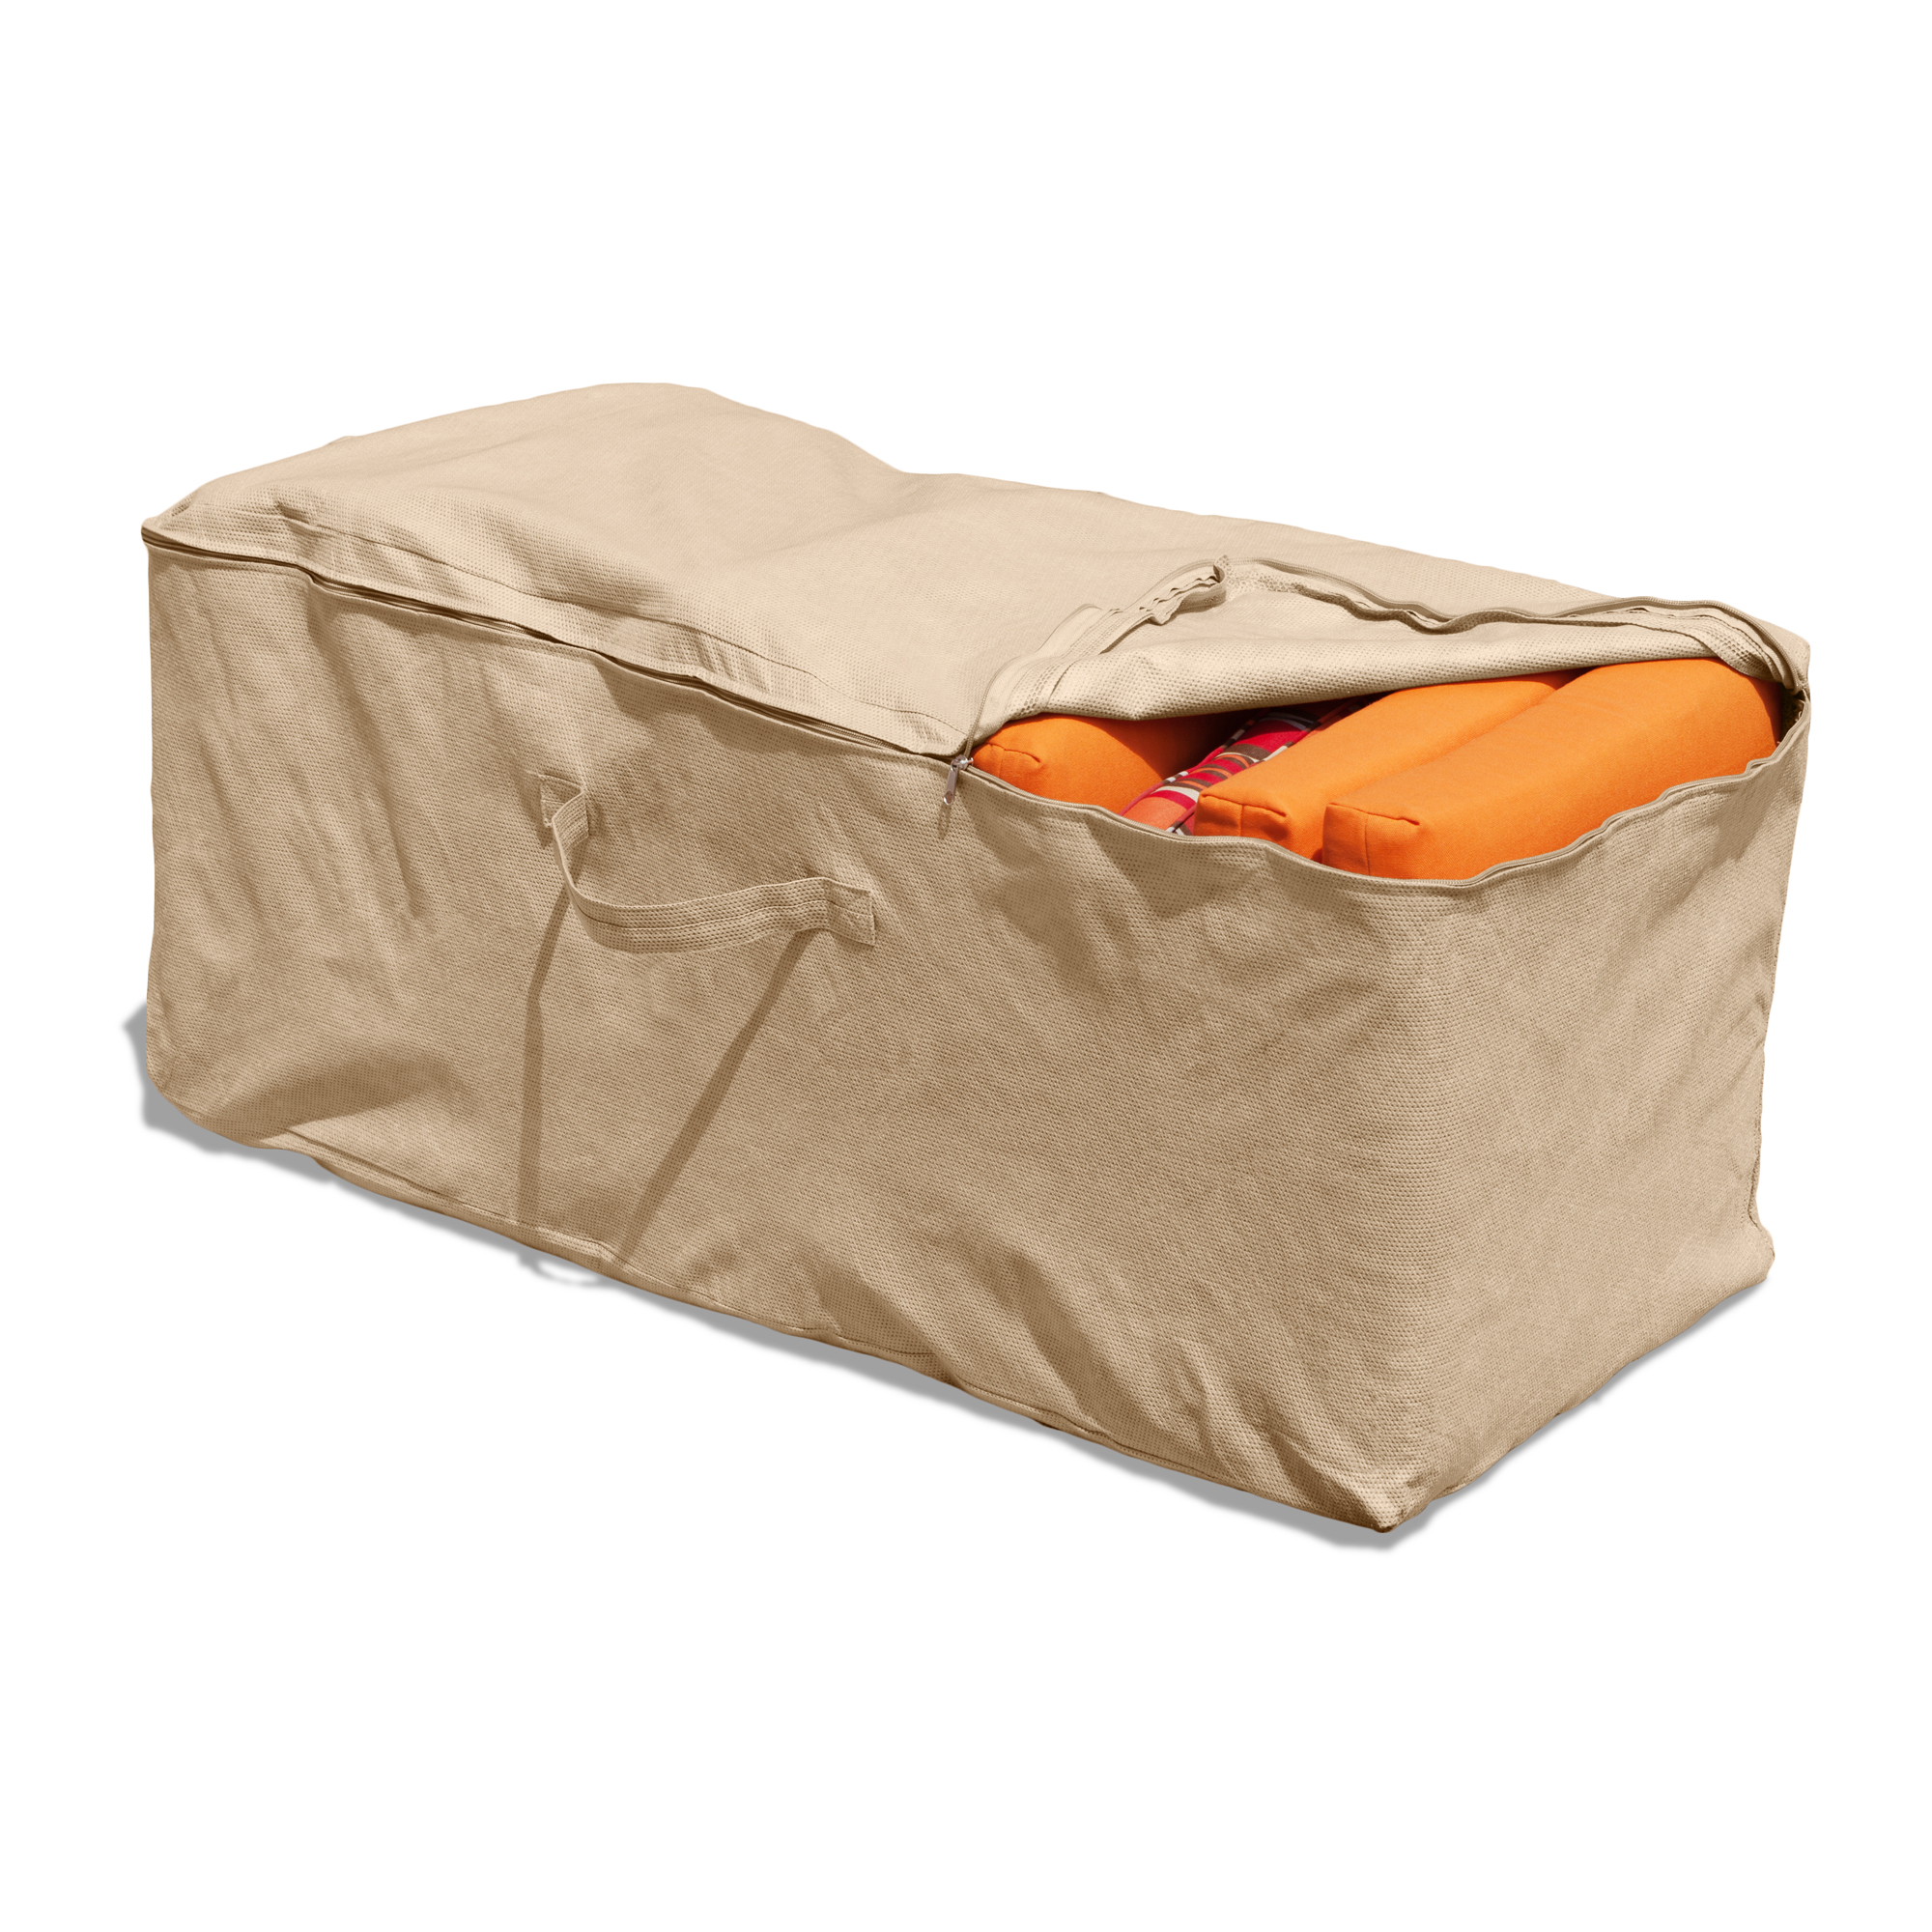 "Budge 19"" H Tan Patio Cushion Storage Bag Cover, NeverWet®"